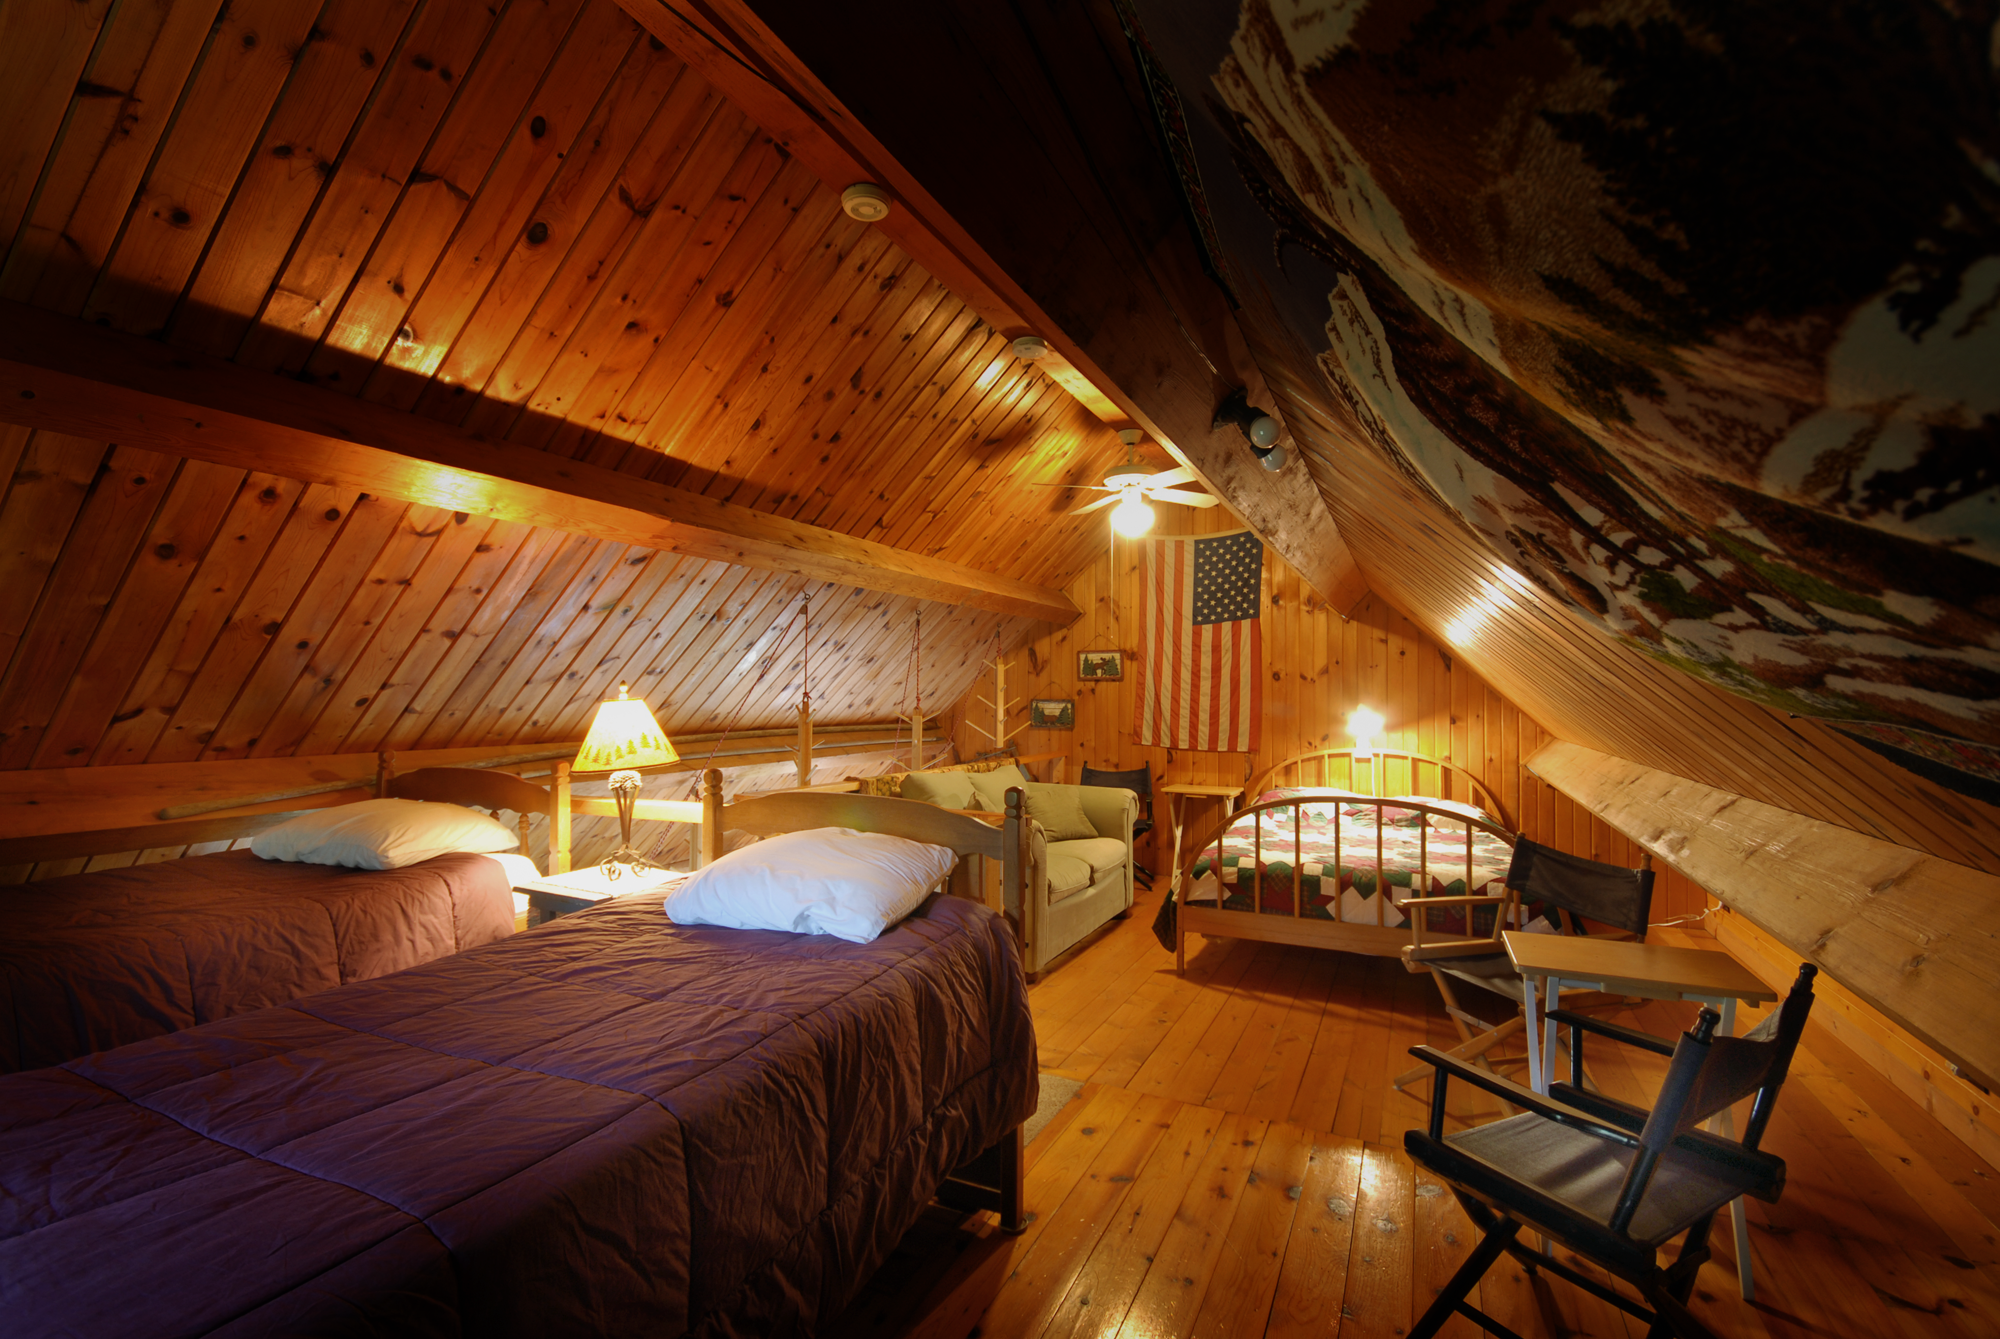 Lopstick Riveredge Loft Bedroompng (2000 1339)